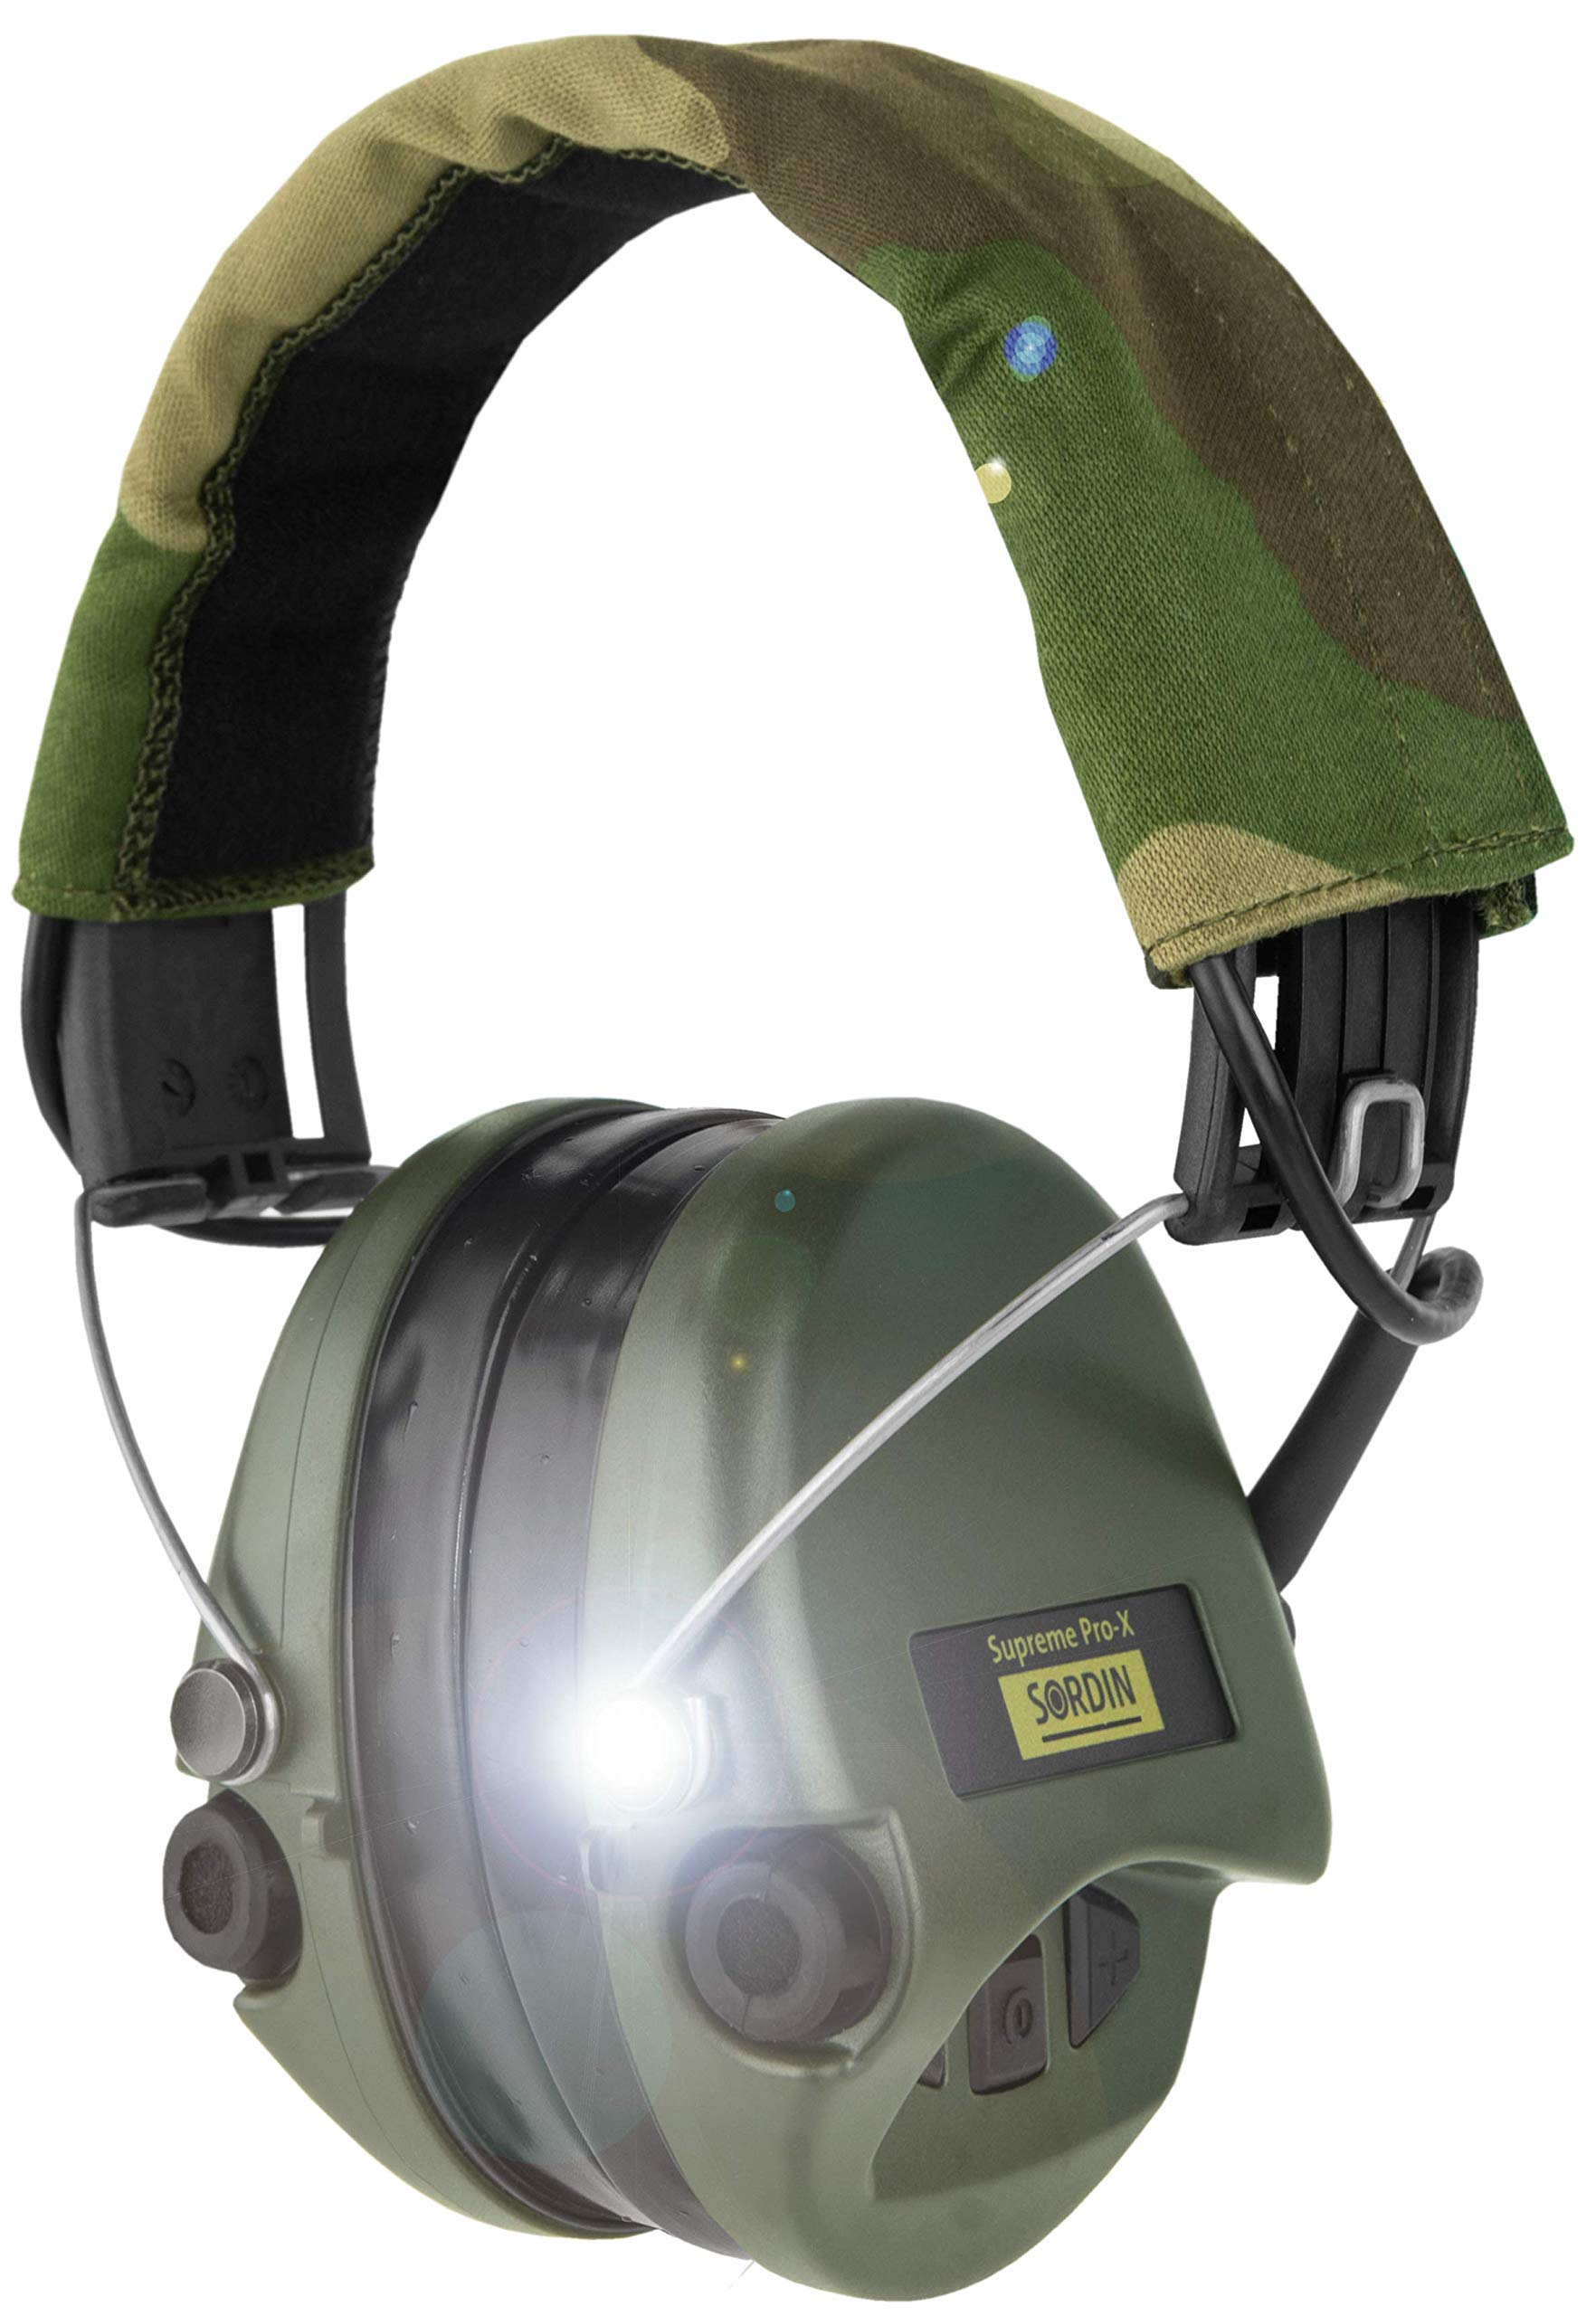 Sordin Supreme PRO X - Noise Reduction Adjustable Ear Muffs with LED Light and Gel Seals - Camo Headband and Green Cups by Sordin